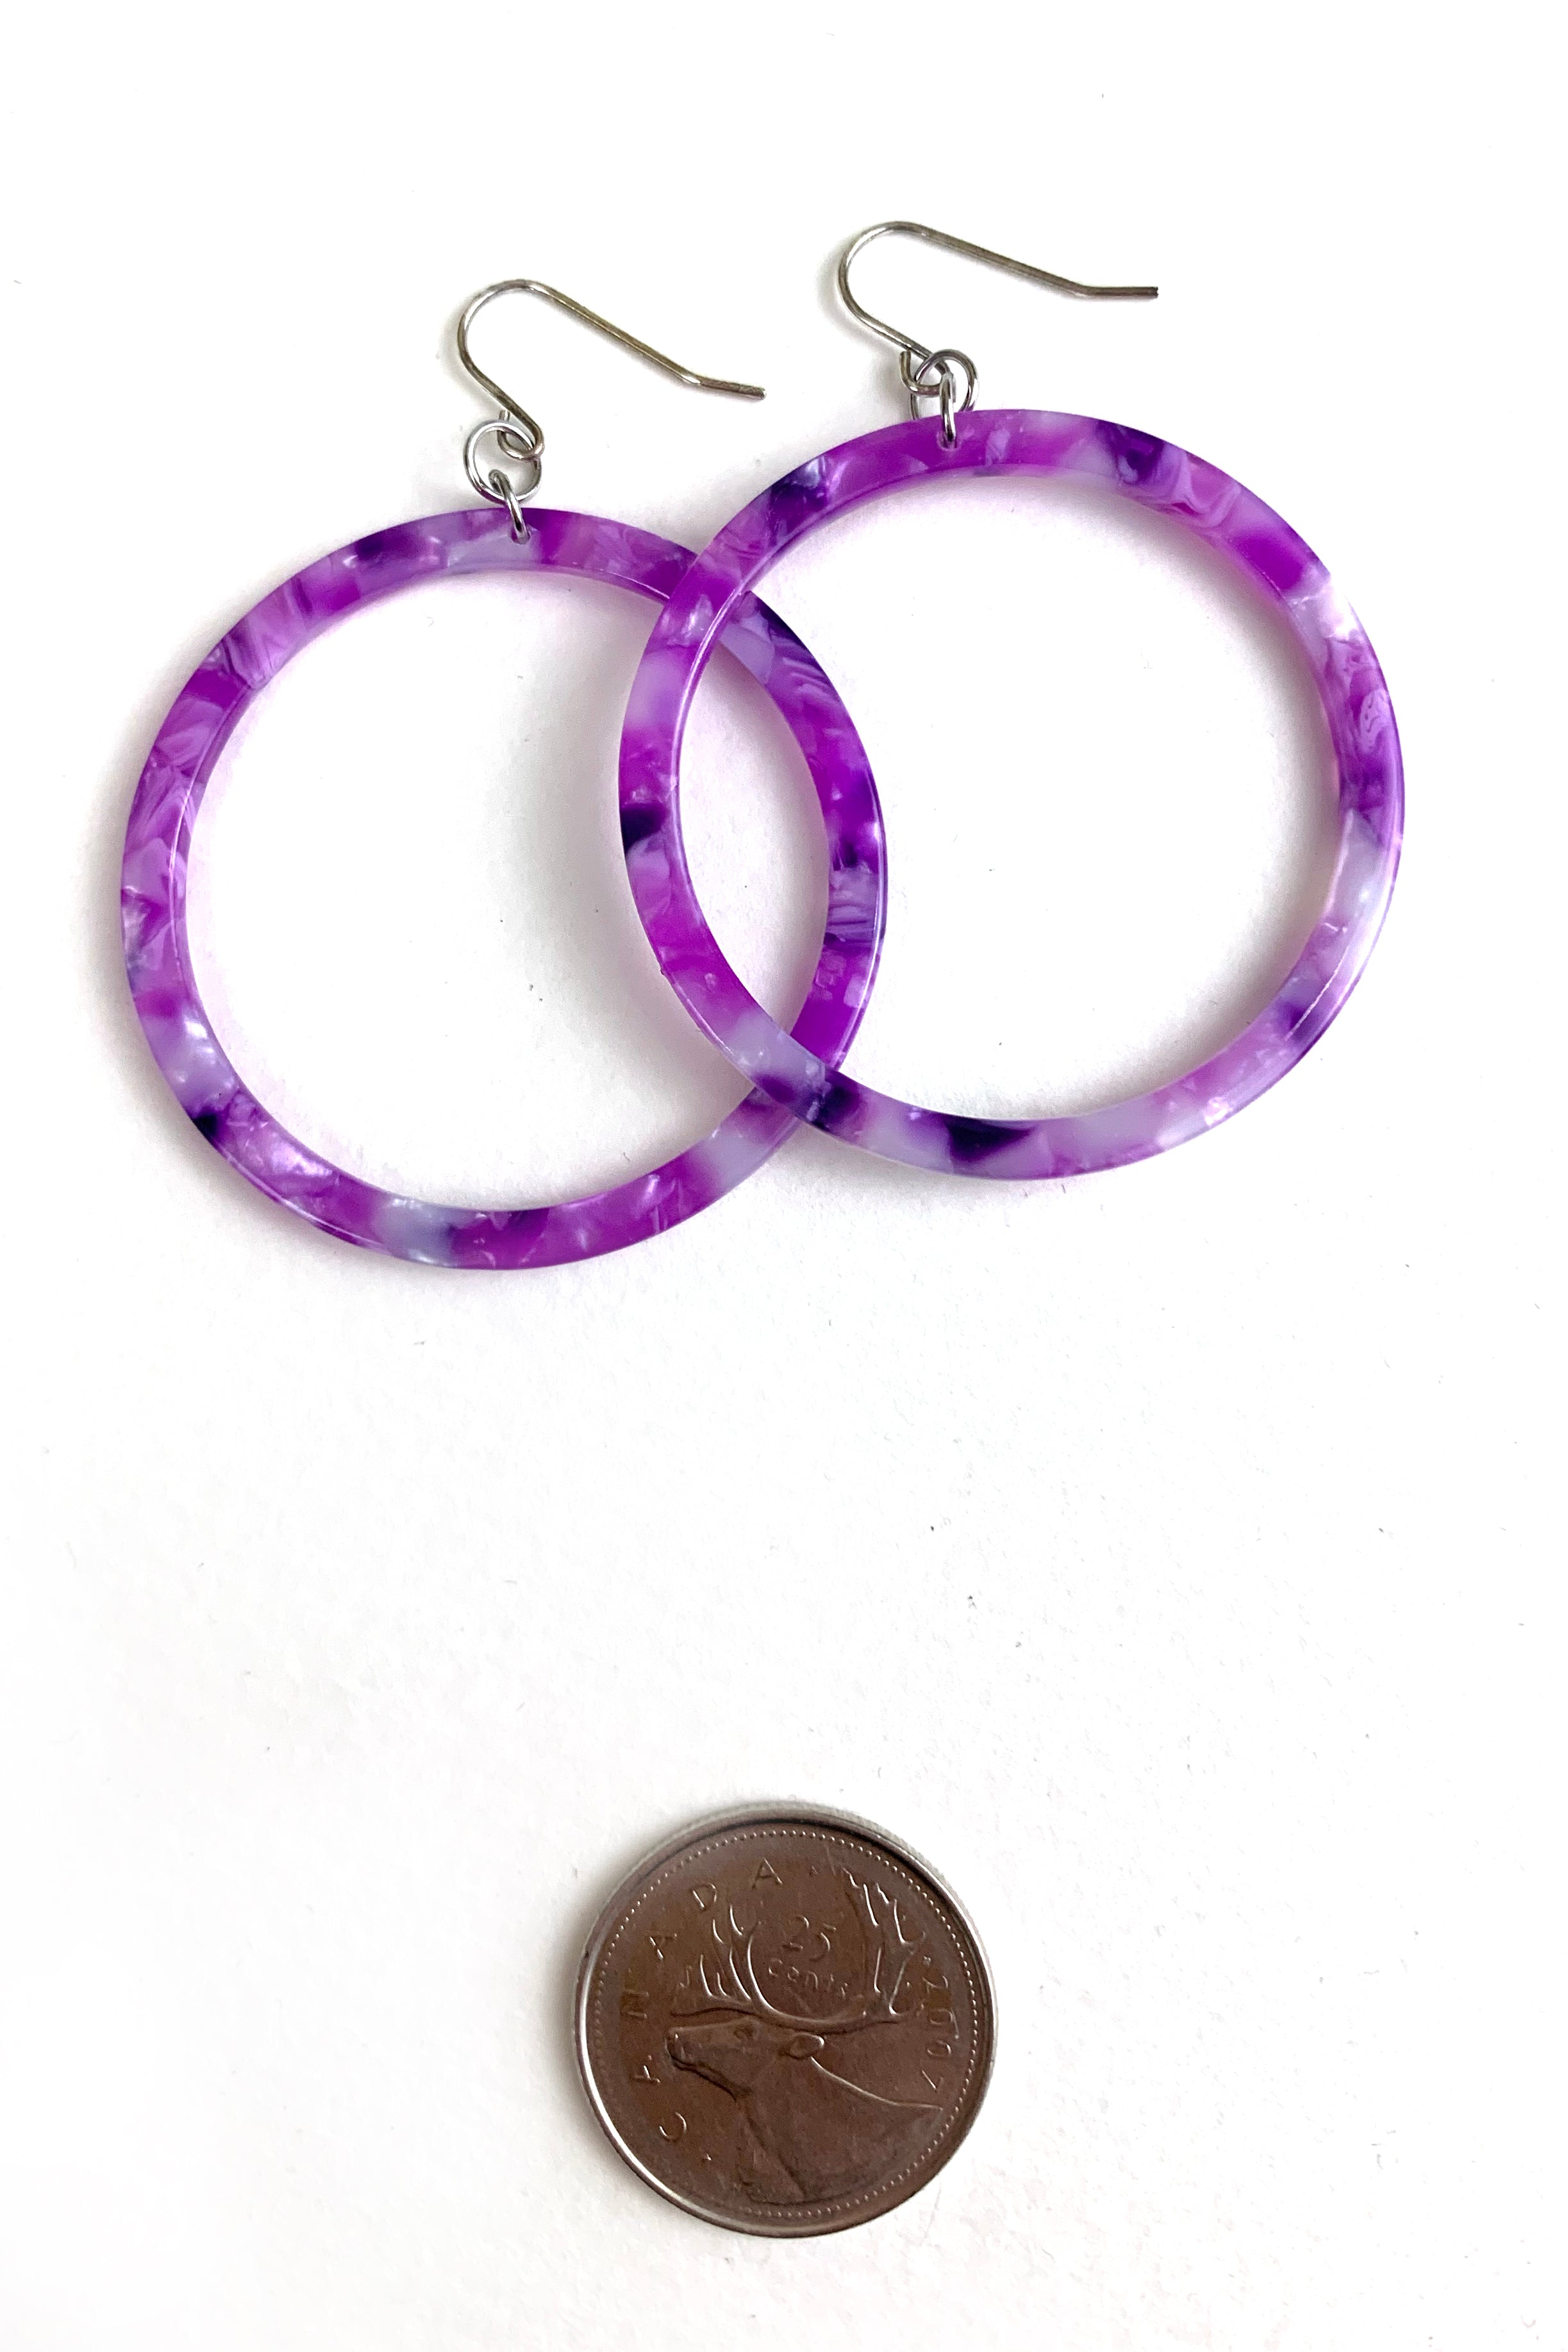 L Cellulose Acetate Round Hoop Earrings